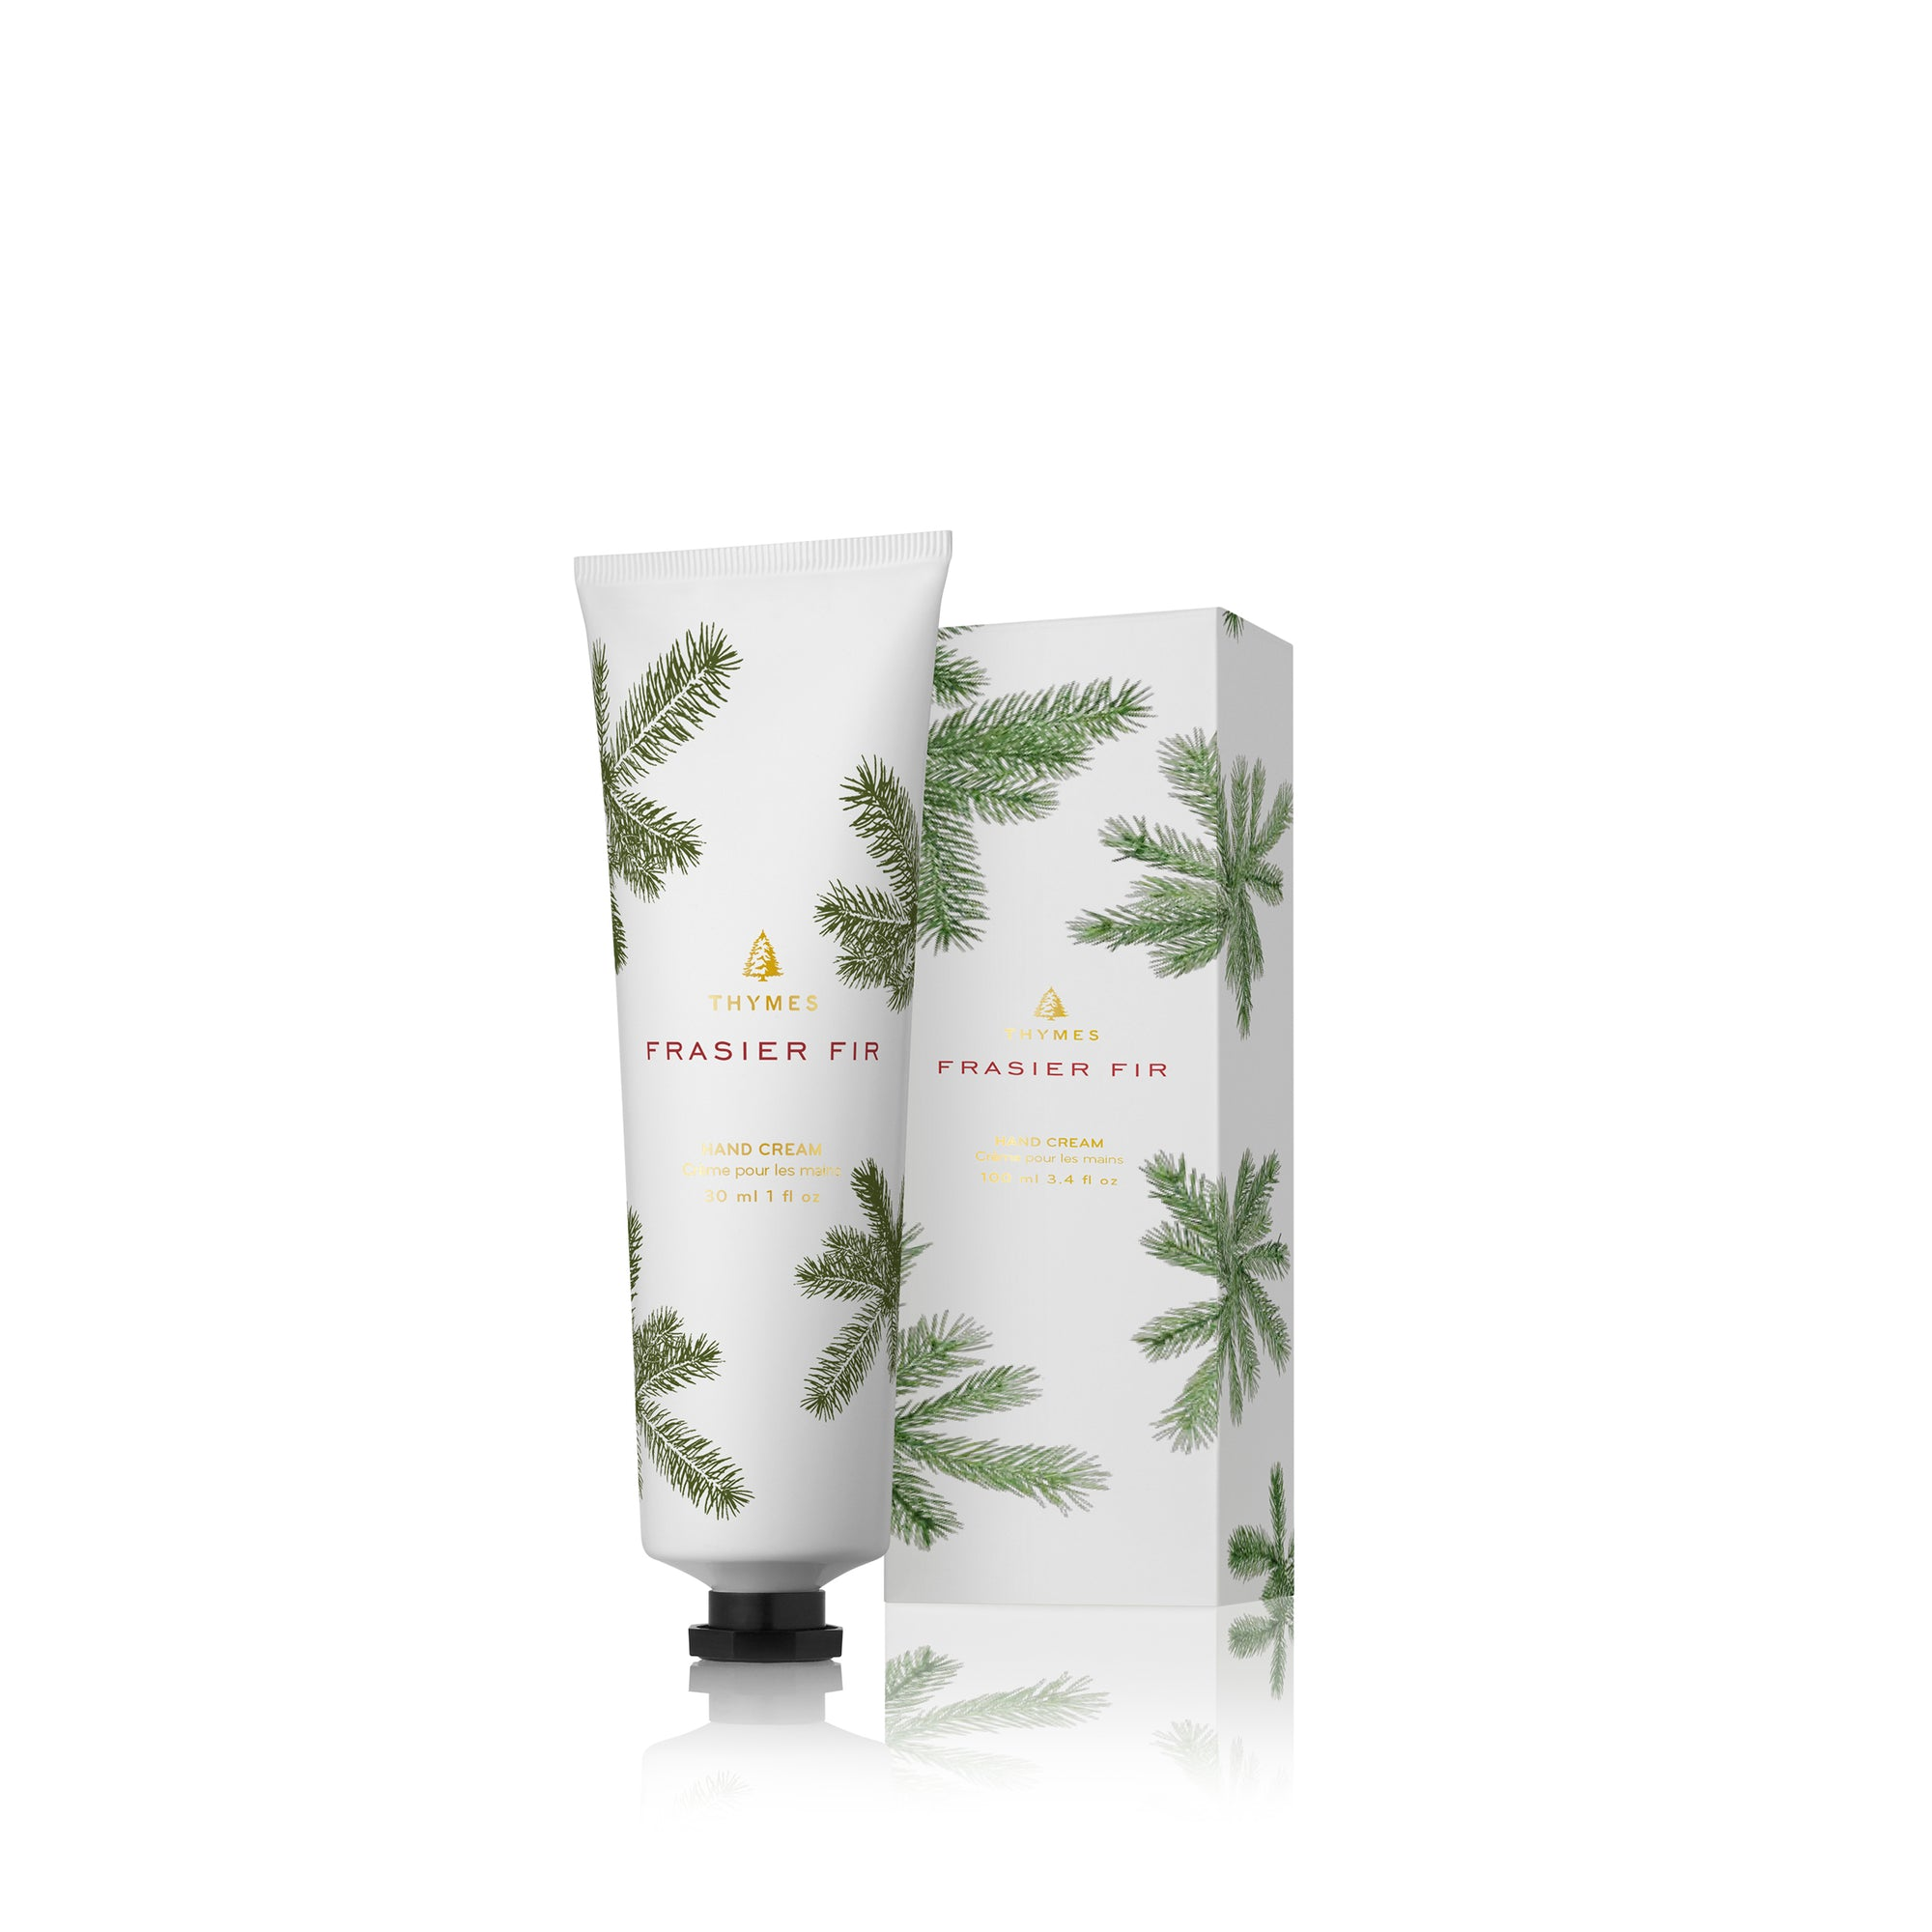 Thymes Frasier Fir Hand Cream - Putti Fine Furnishings Canada